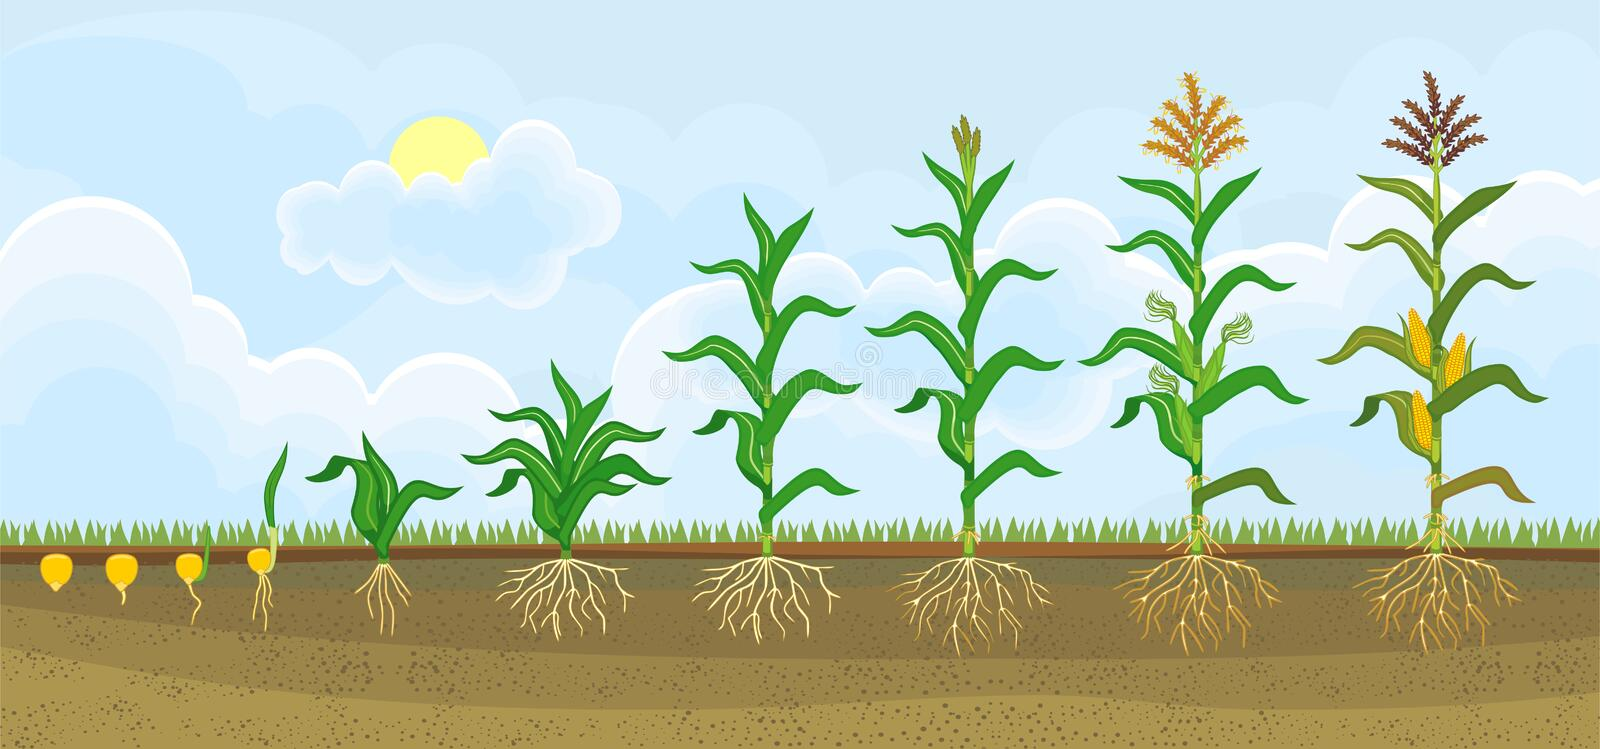 Life cycle of corn or maize plant. Growth stages from seeding to flowering and fruiting plant royalty free illustration